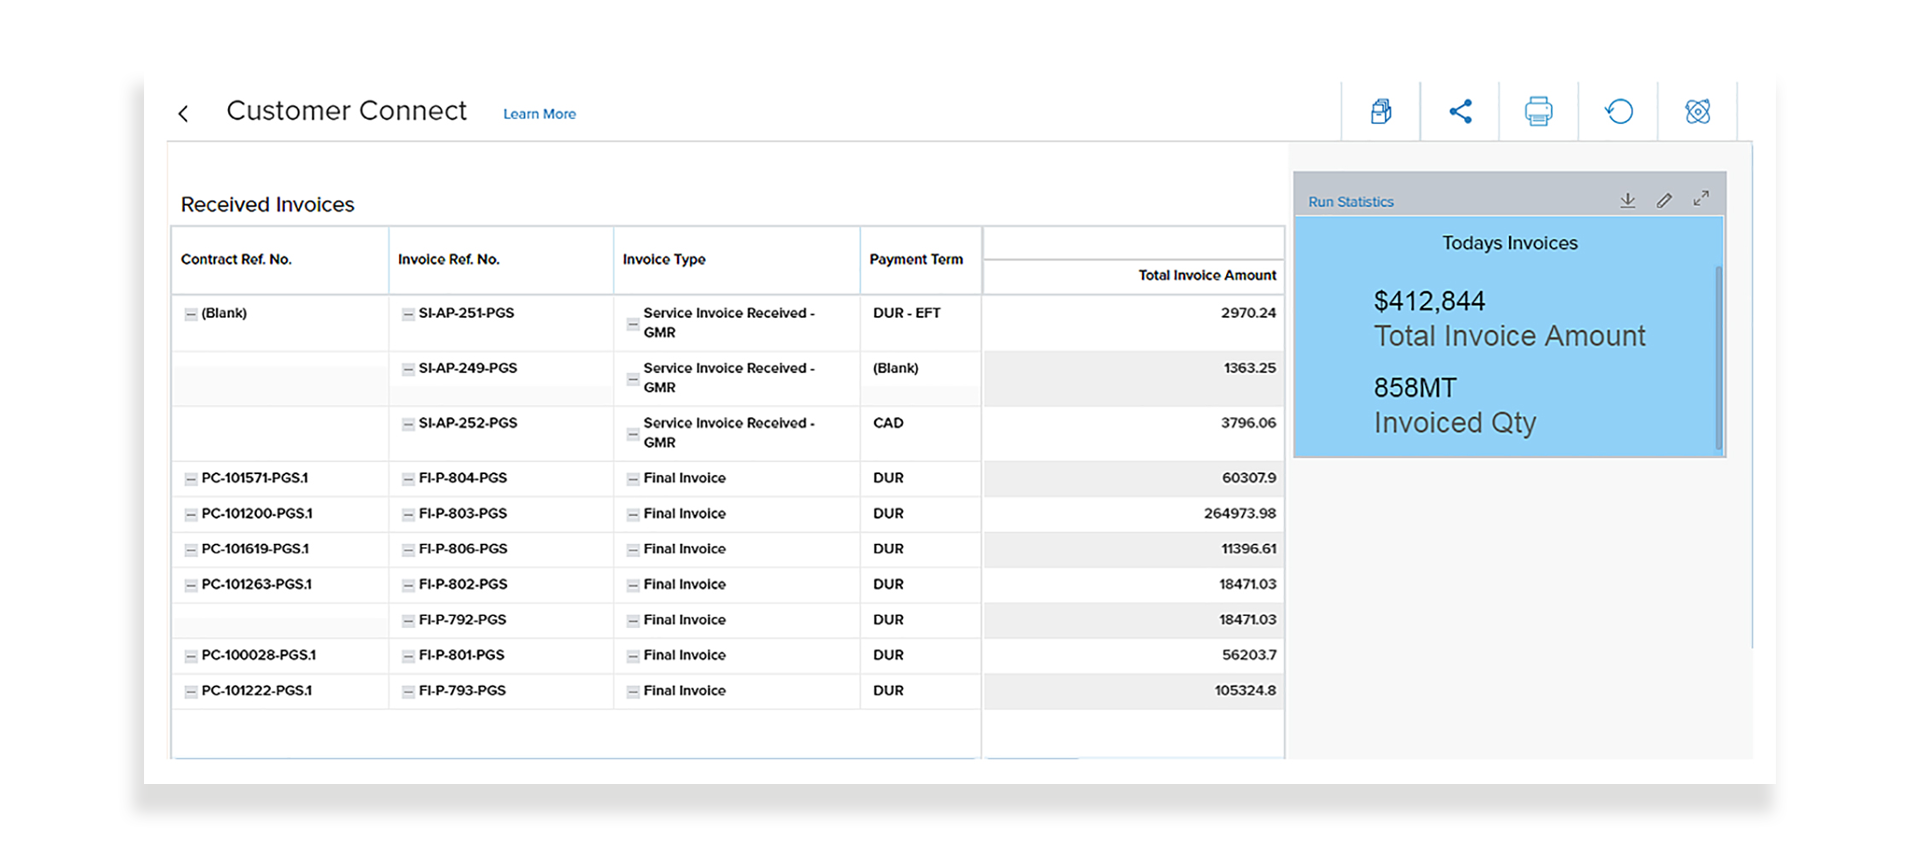 Customer_Connect_Let_Customers_Track_Critical_Business_Processes